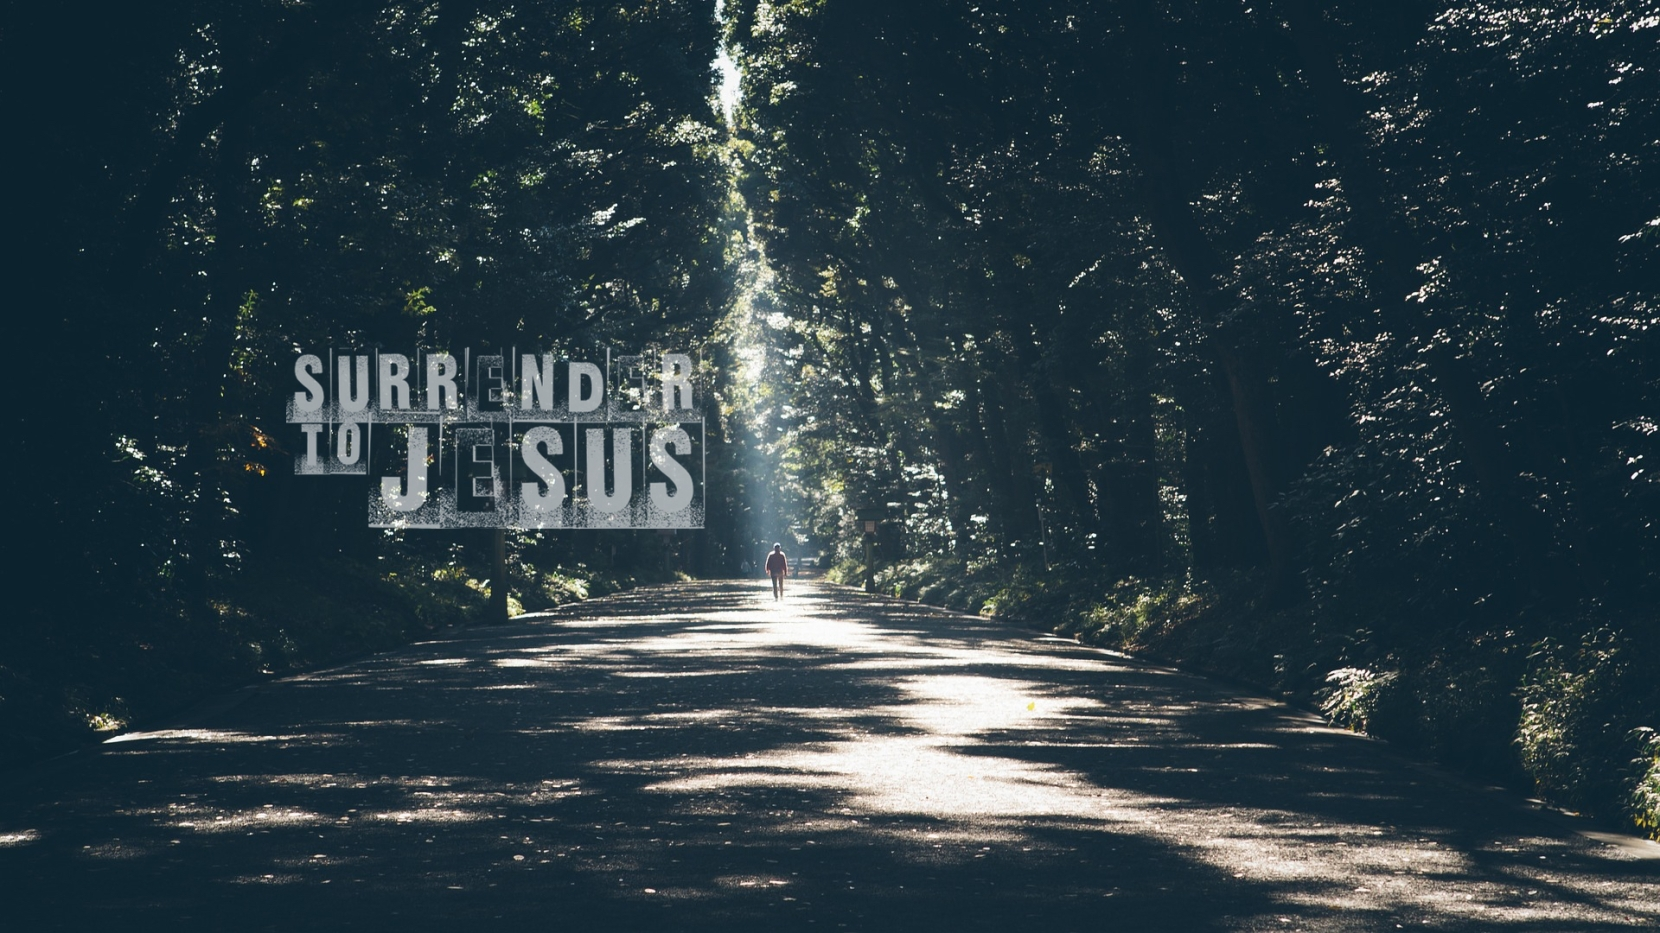 surrenderTOjesus